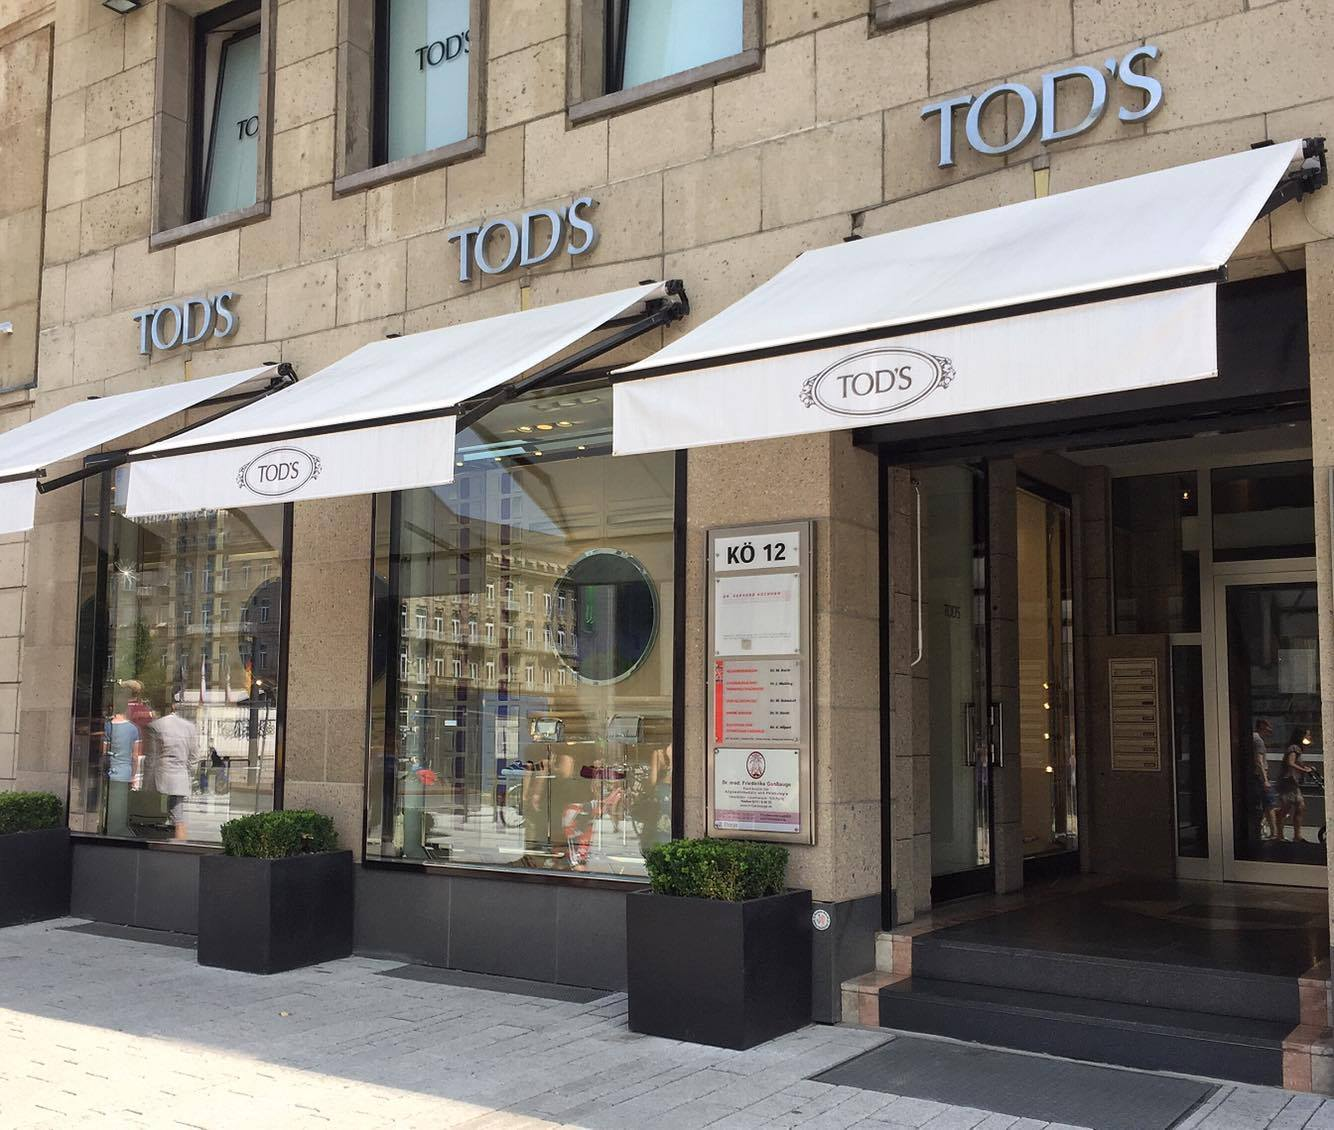 Tod's Boutique at Konigsallee in Dusseldorf, Germany